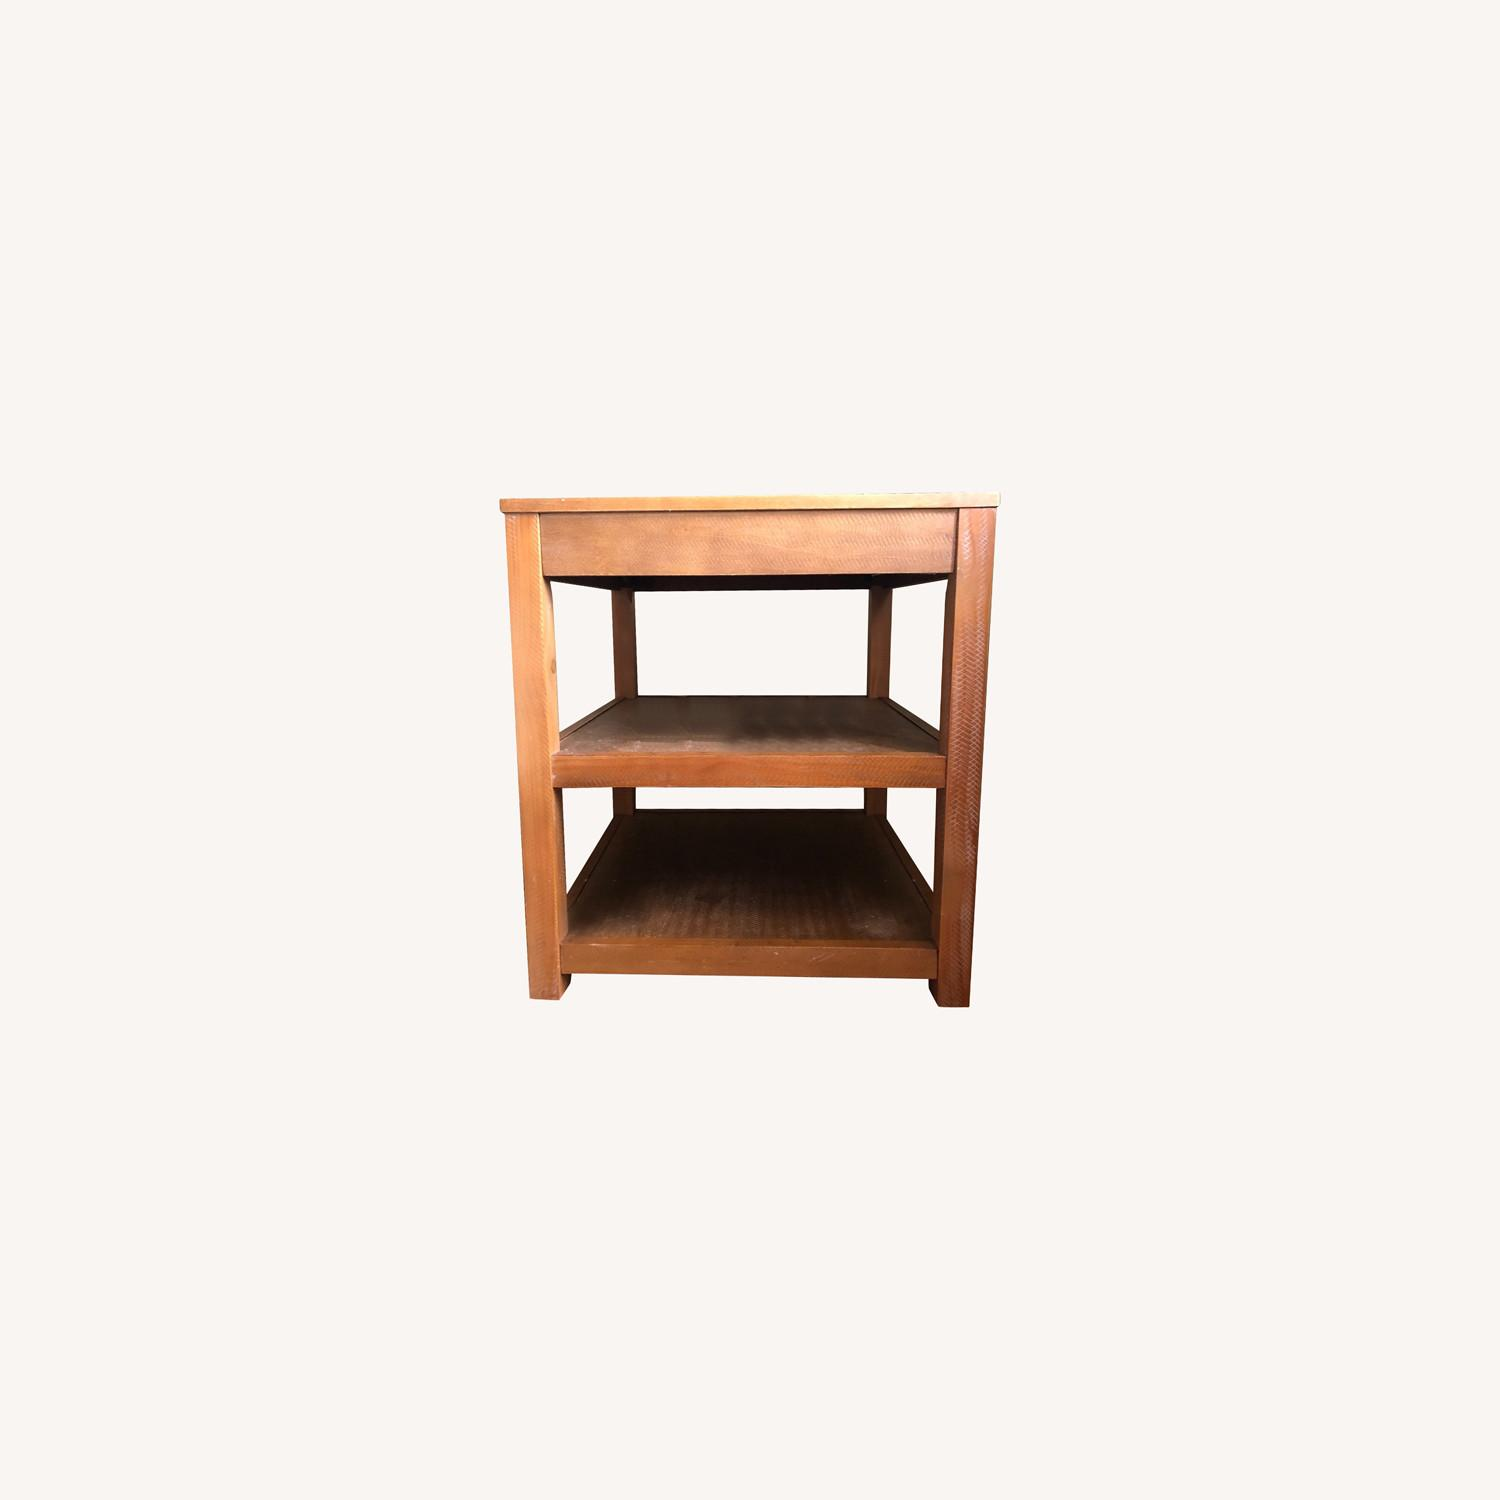 Weathered End Tables - image-0